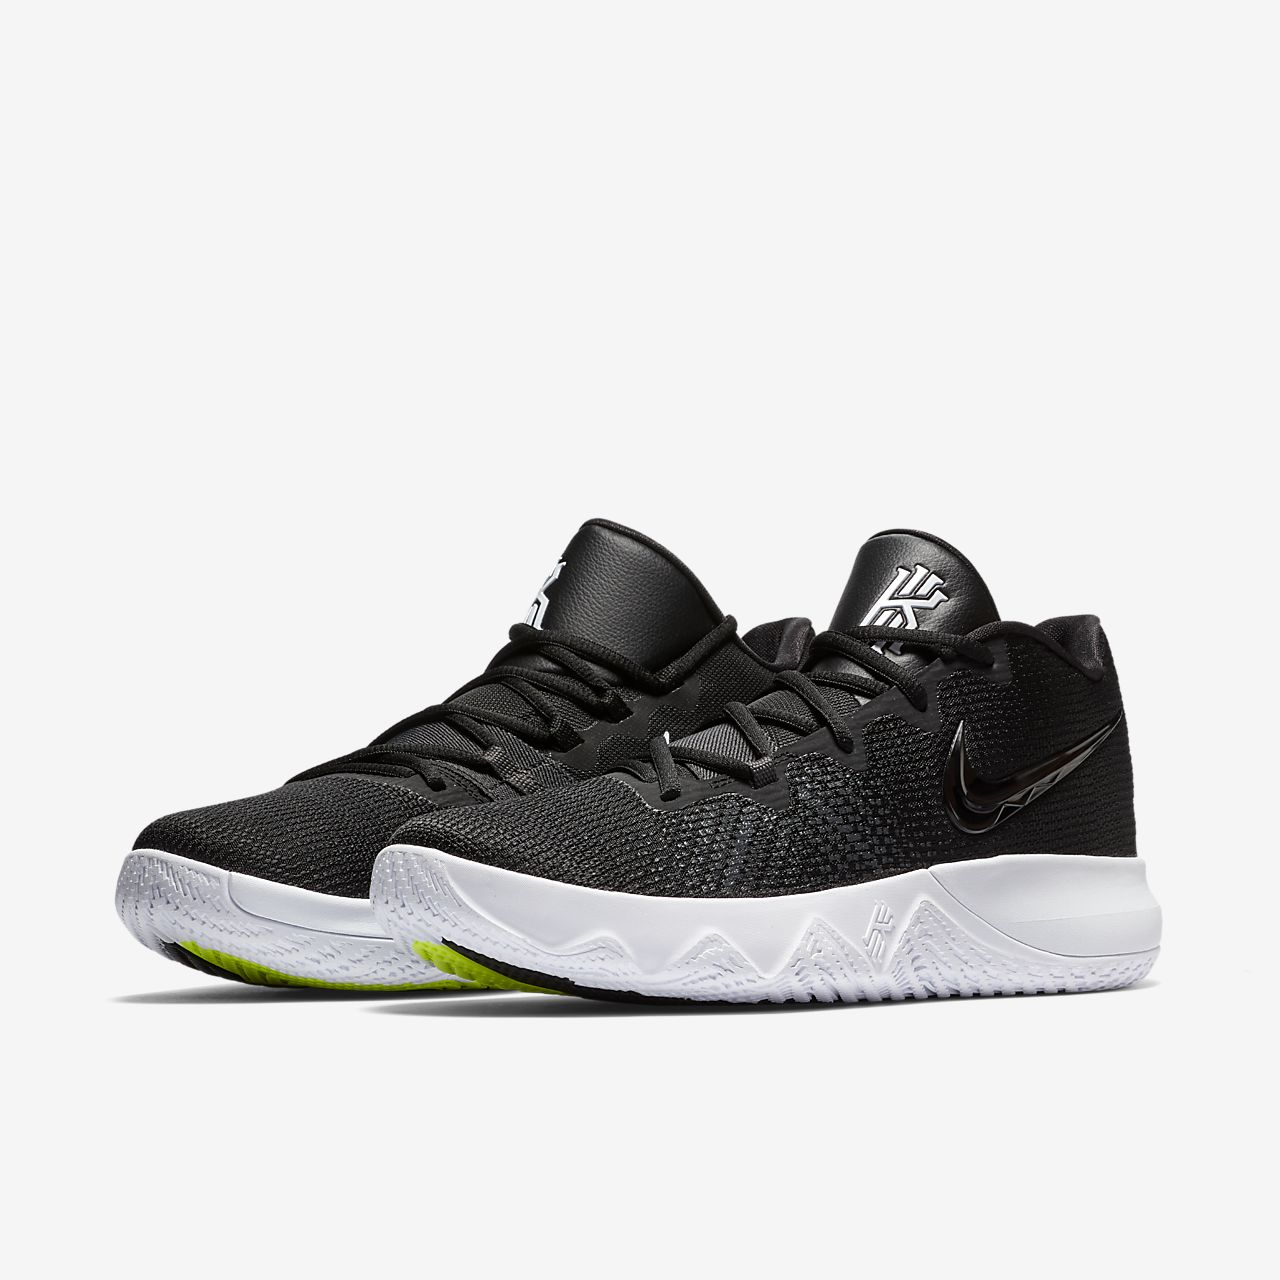 Low Resolution Kyrie Flytrap Basketball Shoe Kyrie Flytrap Basketball Shoe